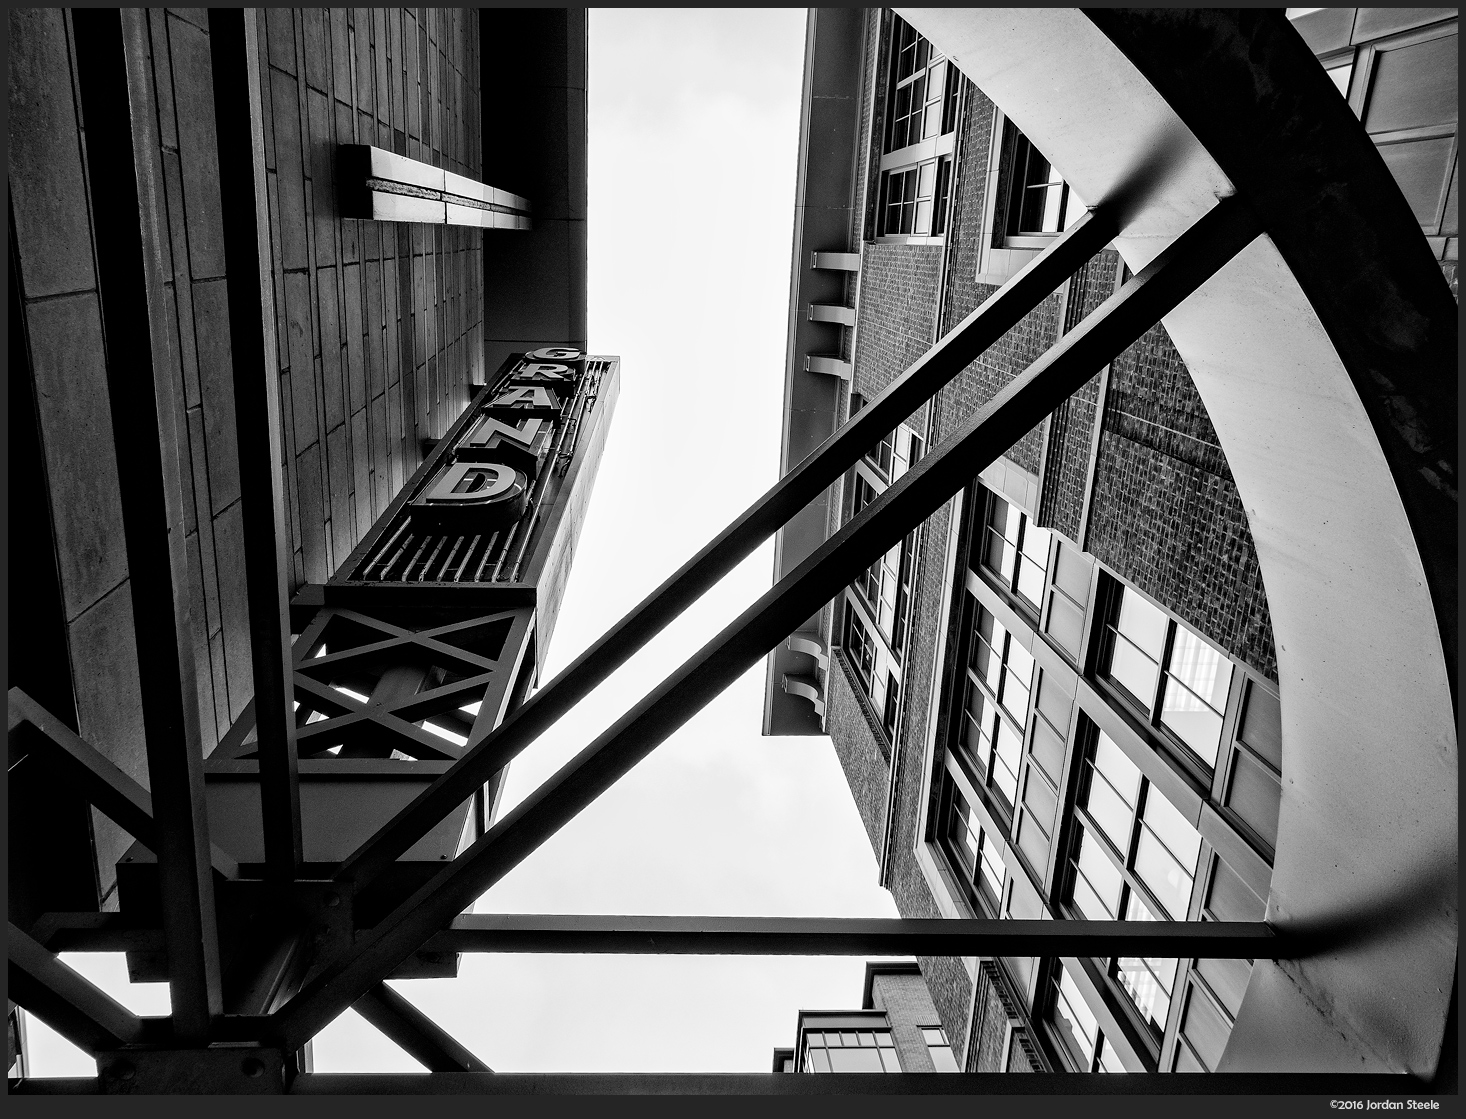 Up at the Grand - Olympus Pen-F with Panasonic 12-32mm f/3.5-5.6 @ 12mm, f/5.6, ISO 200